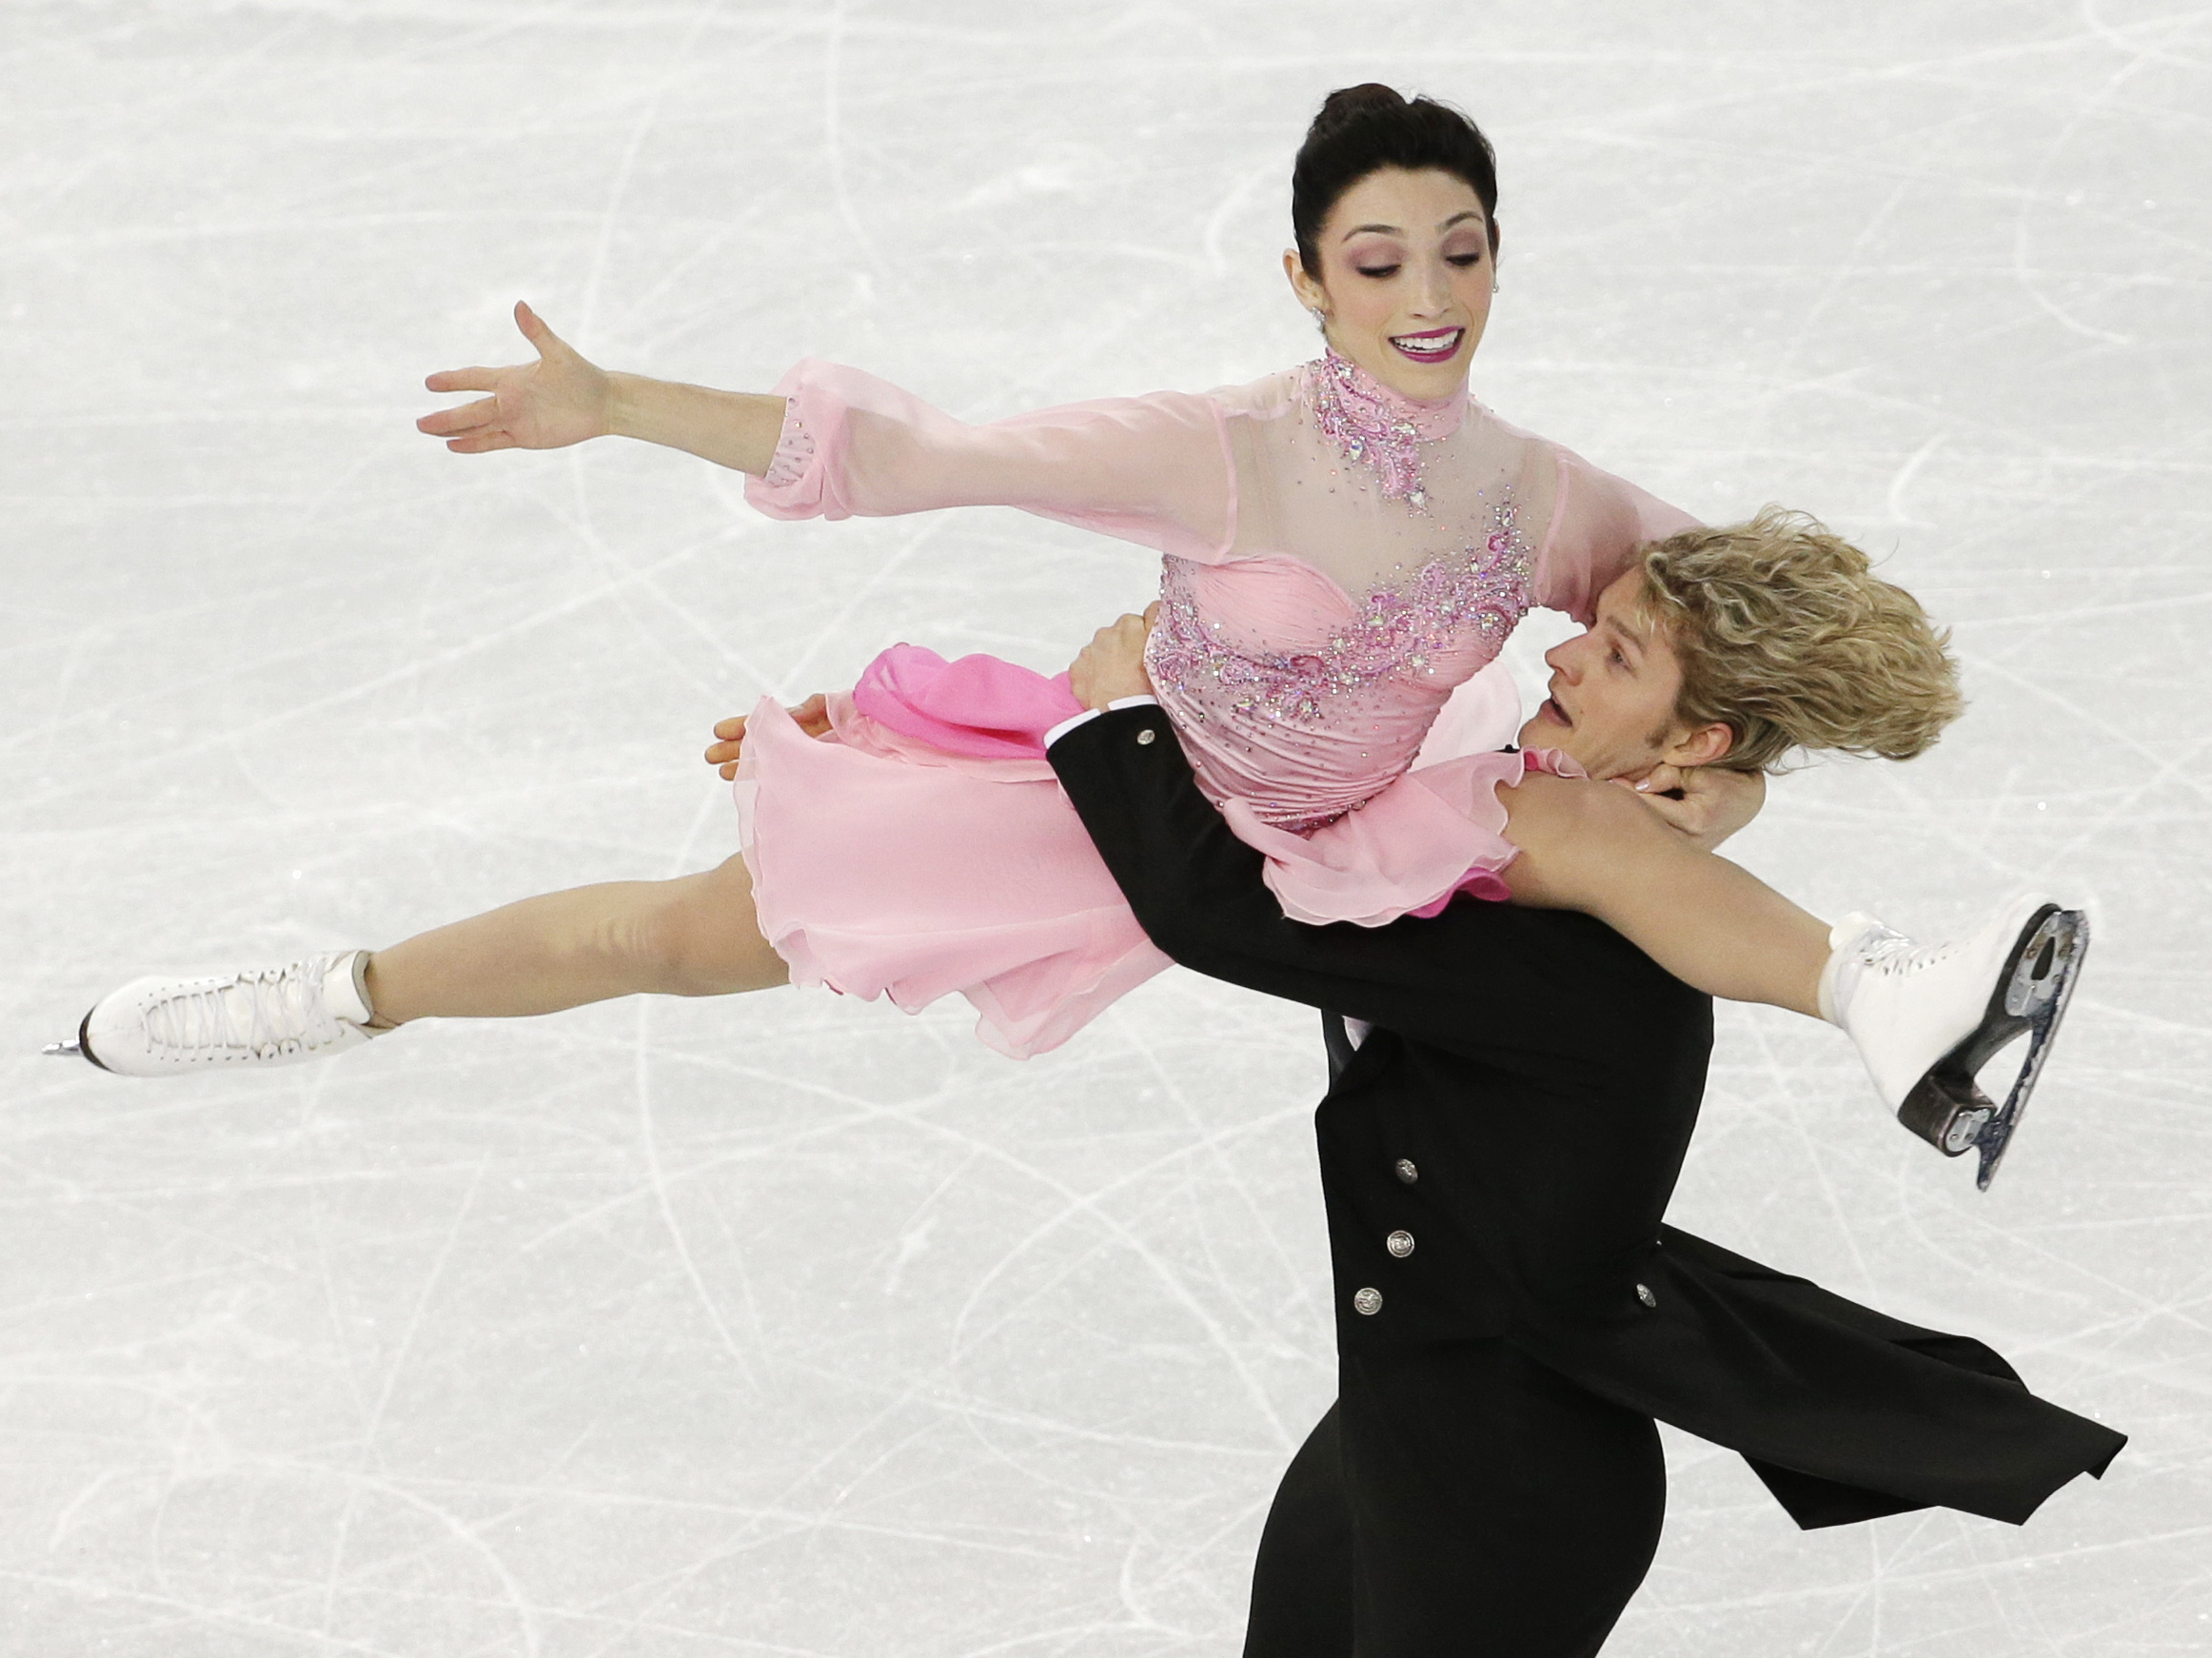 New Team Figure Skating Already Has Its Share Of Controversy